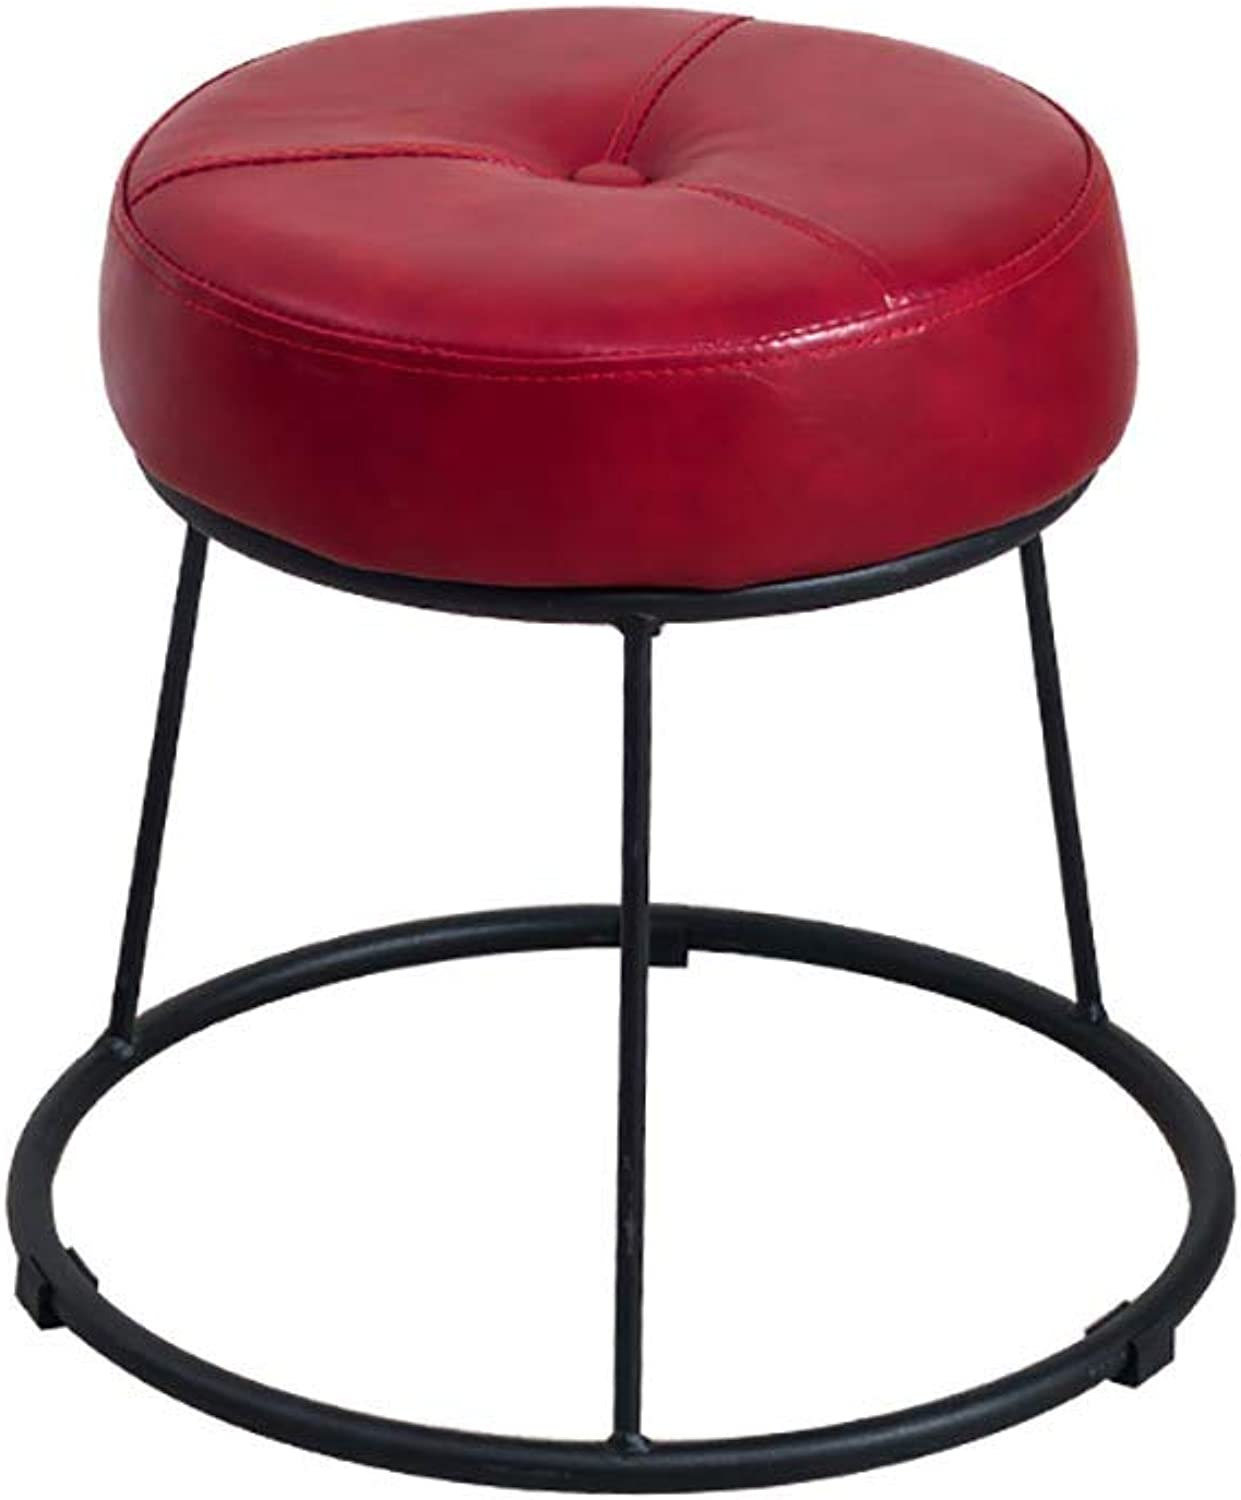 Round Footstool shoes Bench Table Stool Makeup Stool Leather Breathable Wrought Iron wear-Resistant Anti-Skid Load-Bearing (color   RED, Size   31.5  36.5cm)